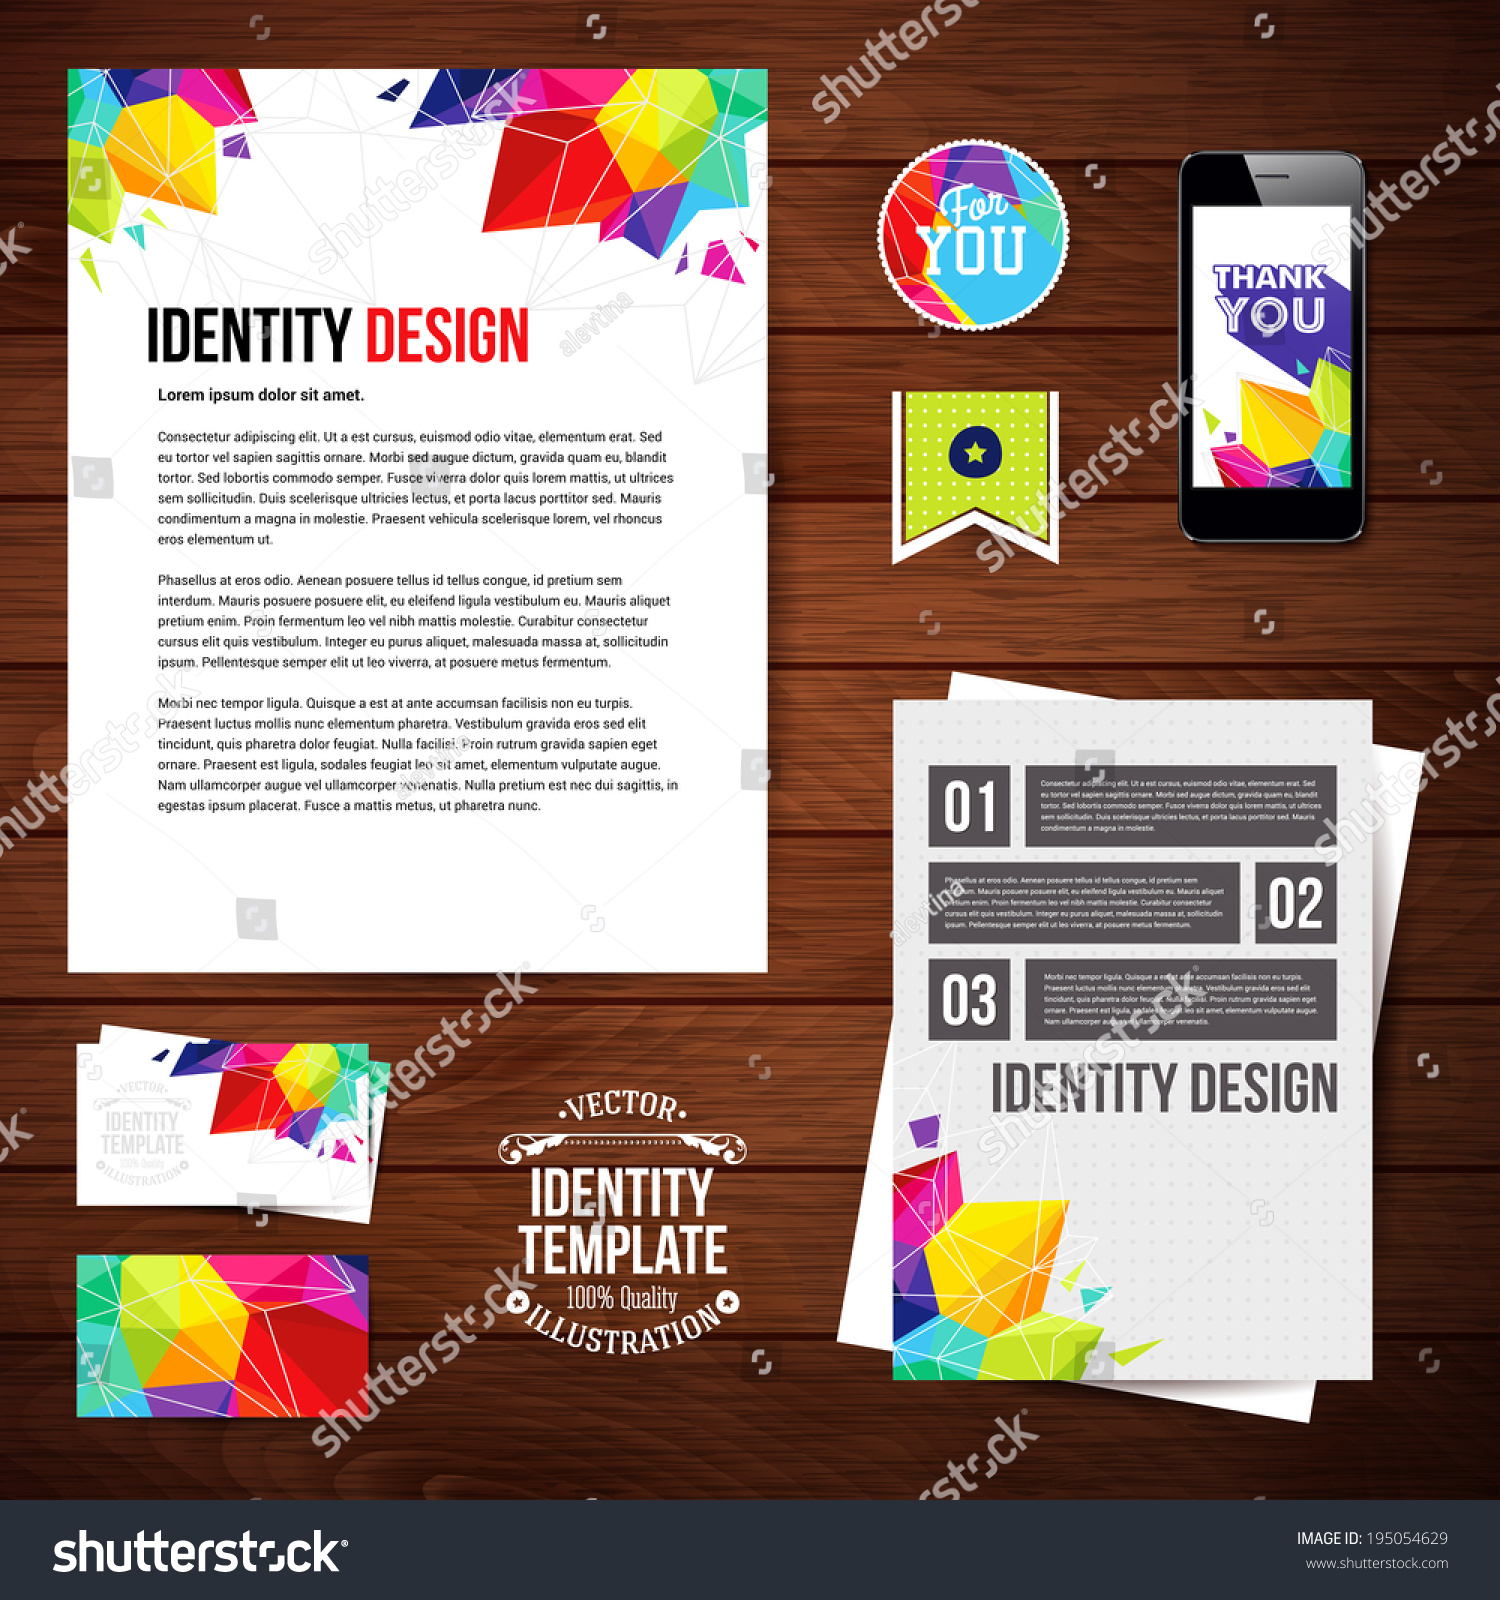 Business cards while you wait image collections free business cards sticker business cards images free business cards identity design your business geometric style stock vector identity magicingreecefo Gallery